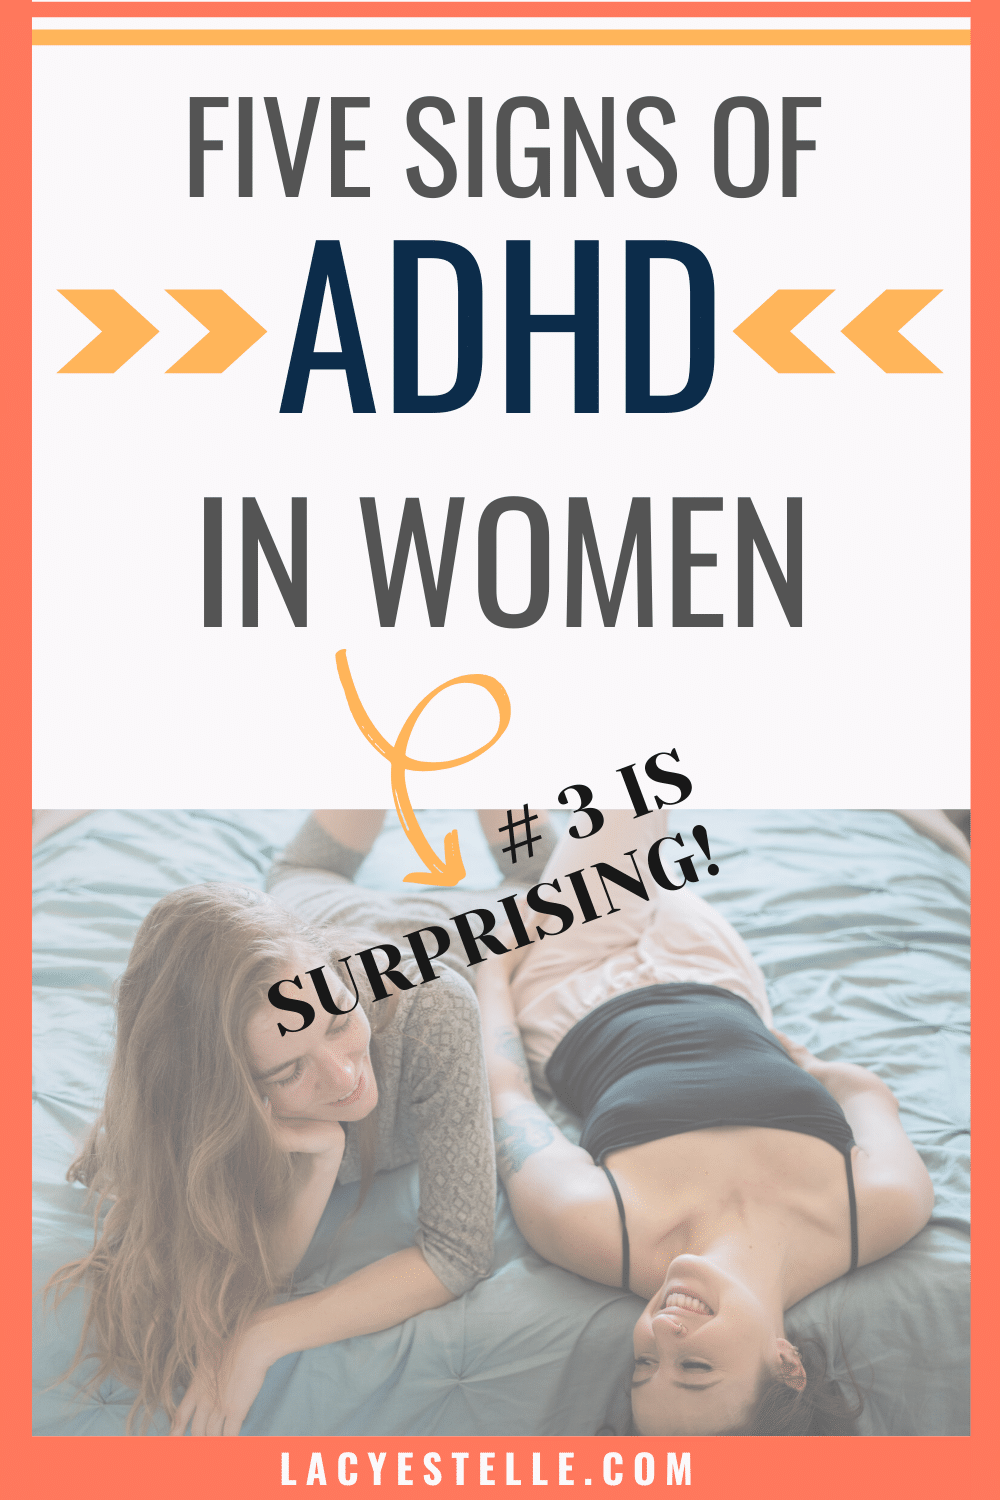 Five signs of ADHD in women that you probably didn't expect. I never knew these were all signs of ADHD in women.